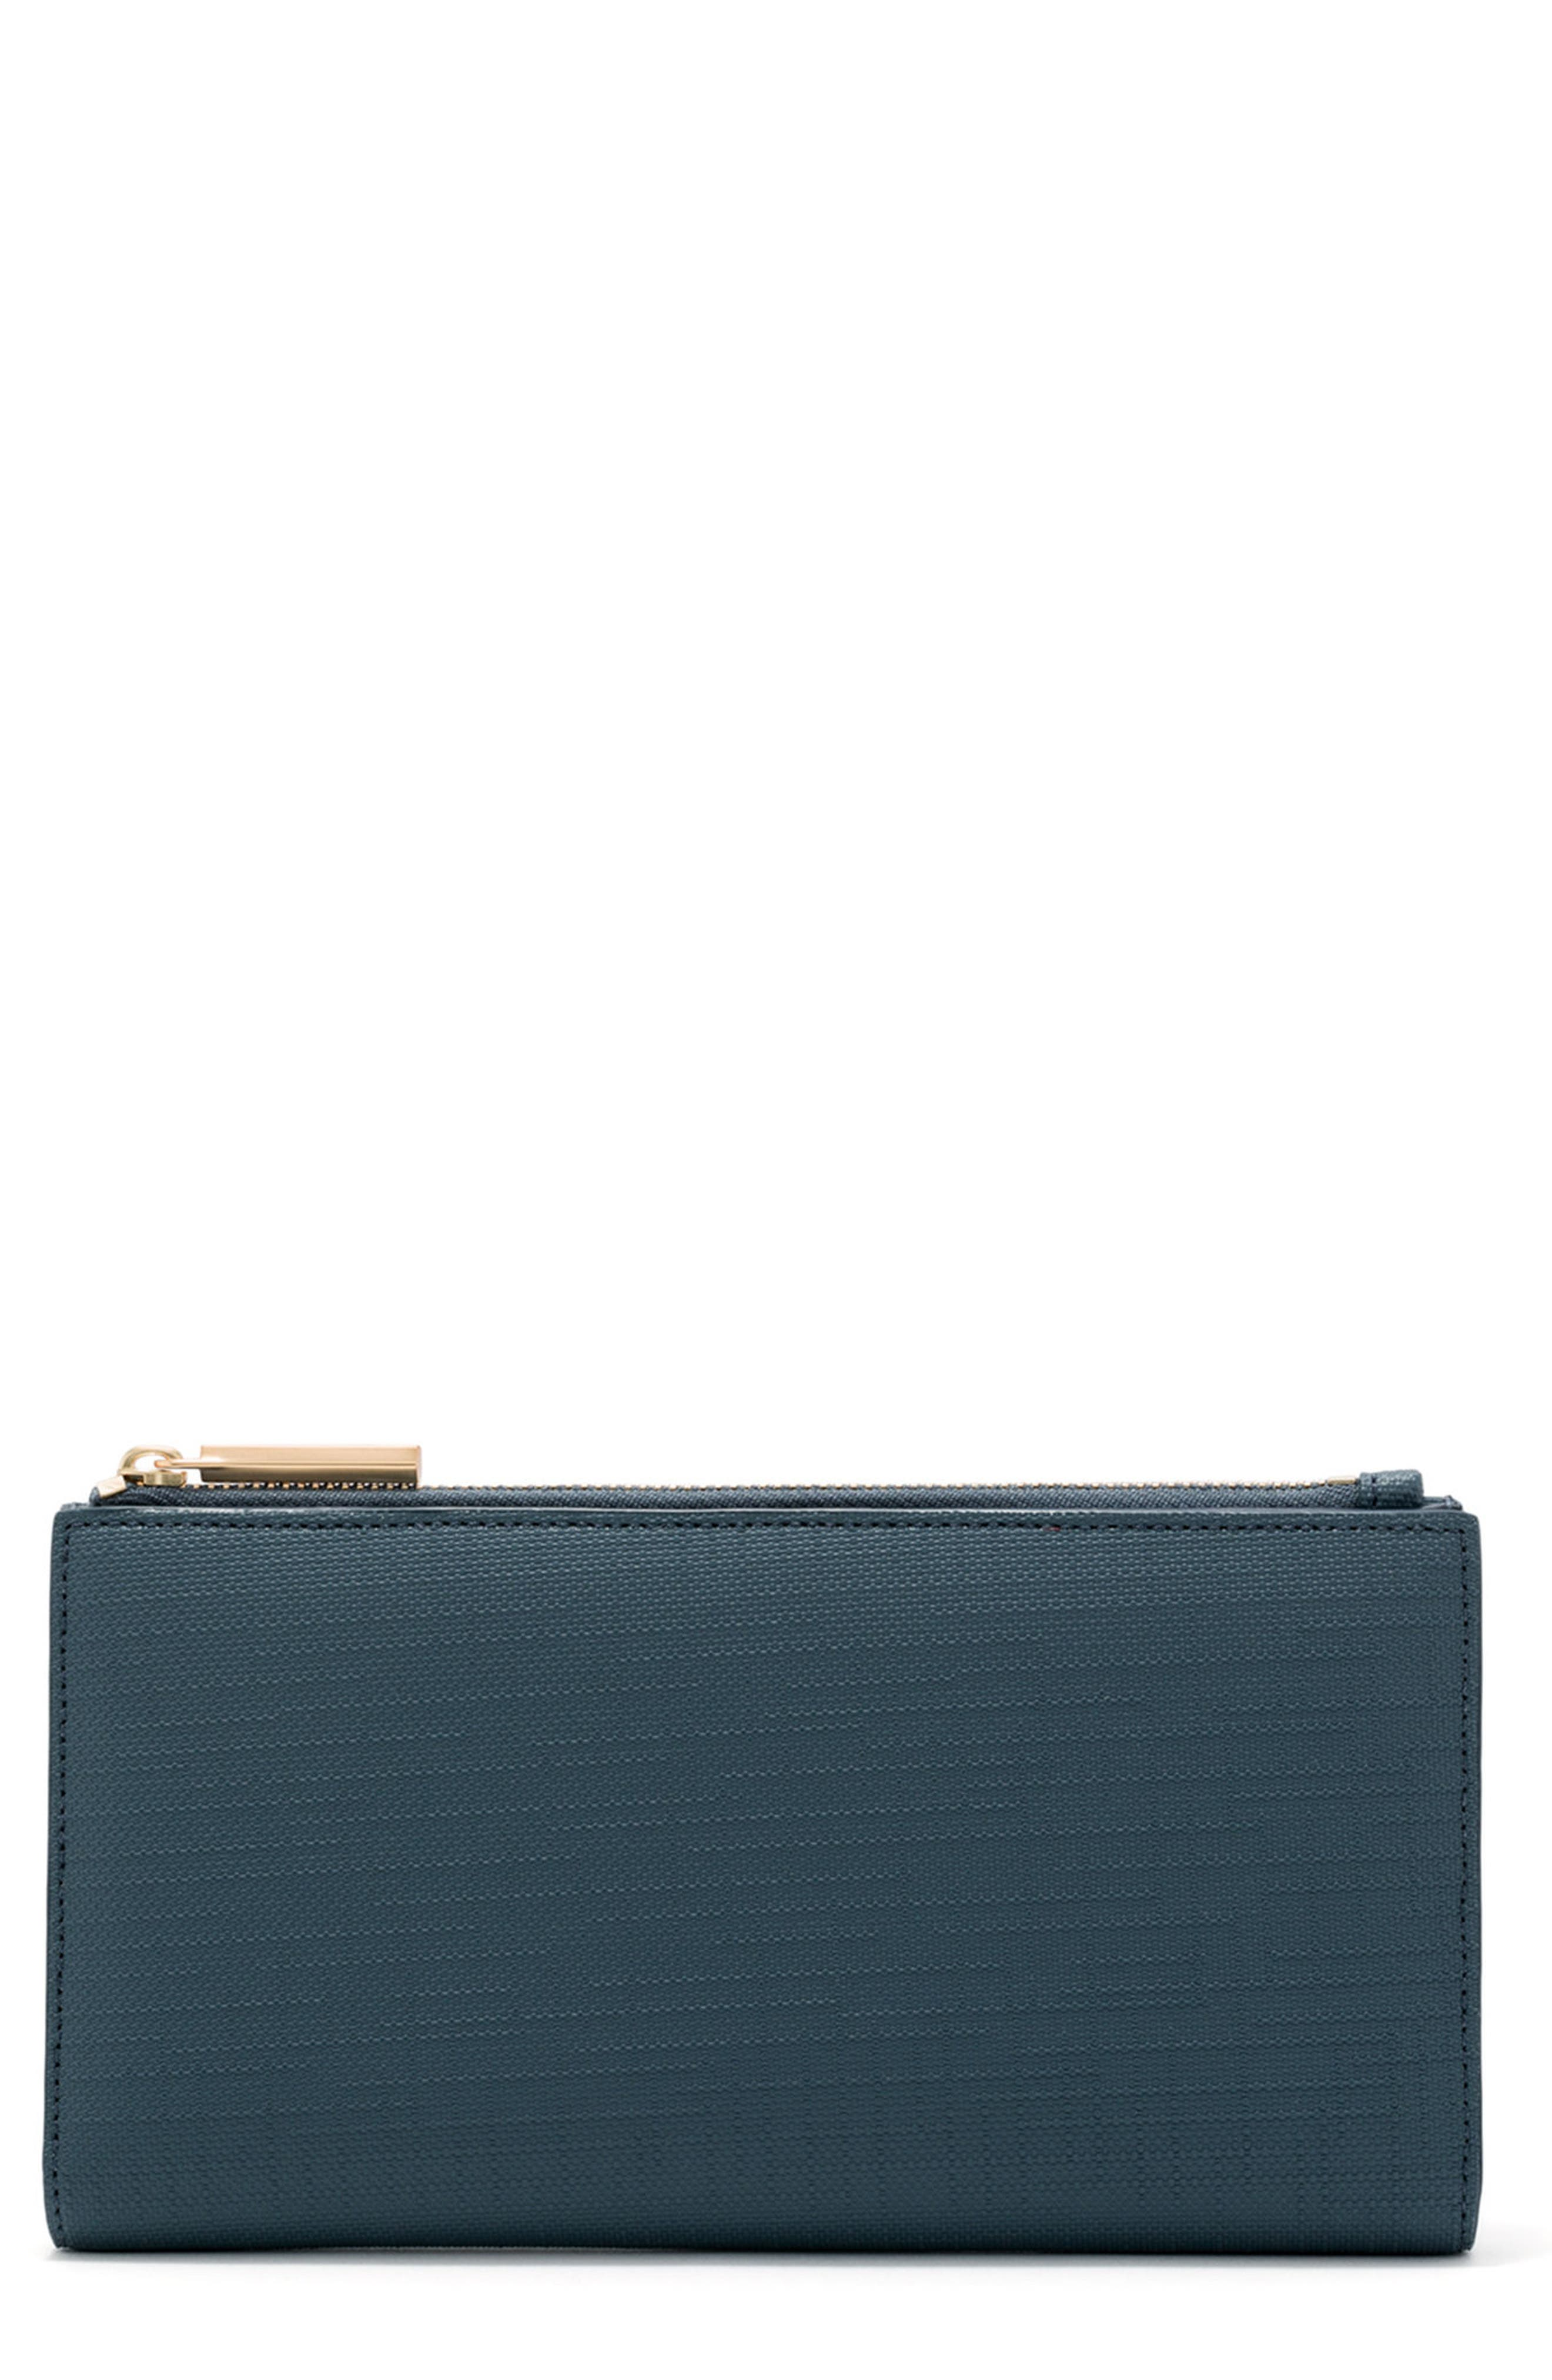 DAGNE DOVER Signature Slim Coated Canvas Wallet, Main, color, BLEECKER BLUSH